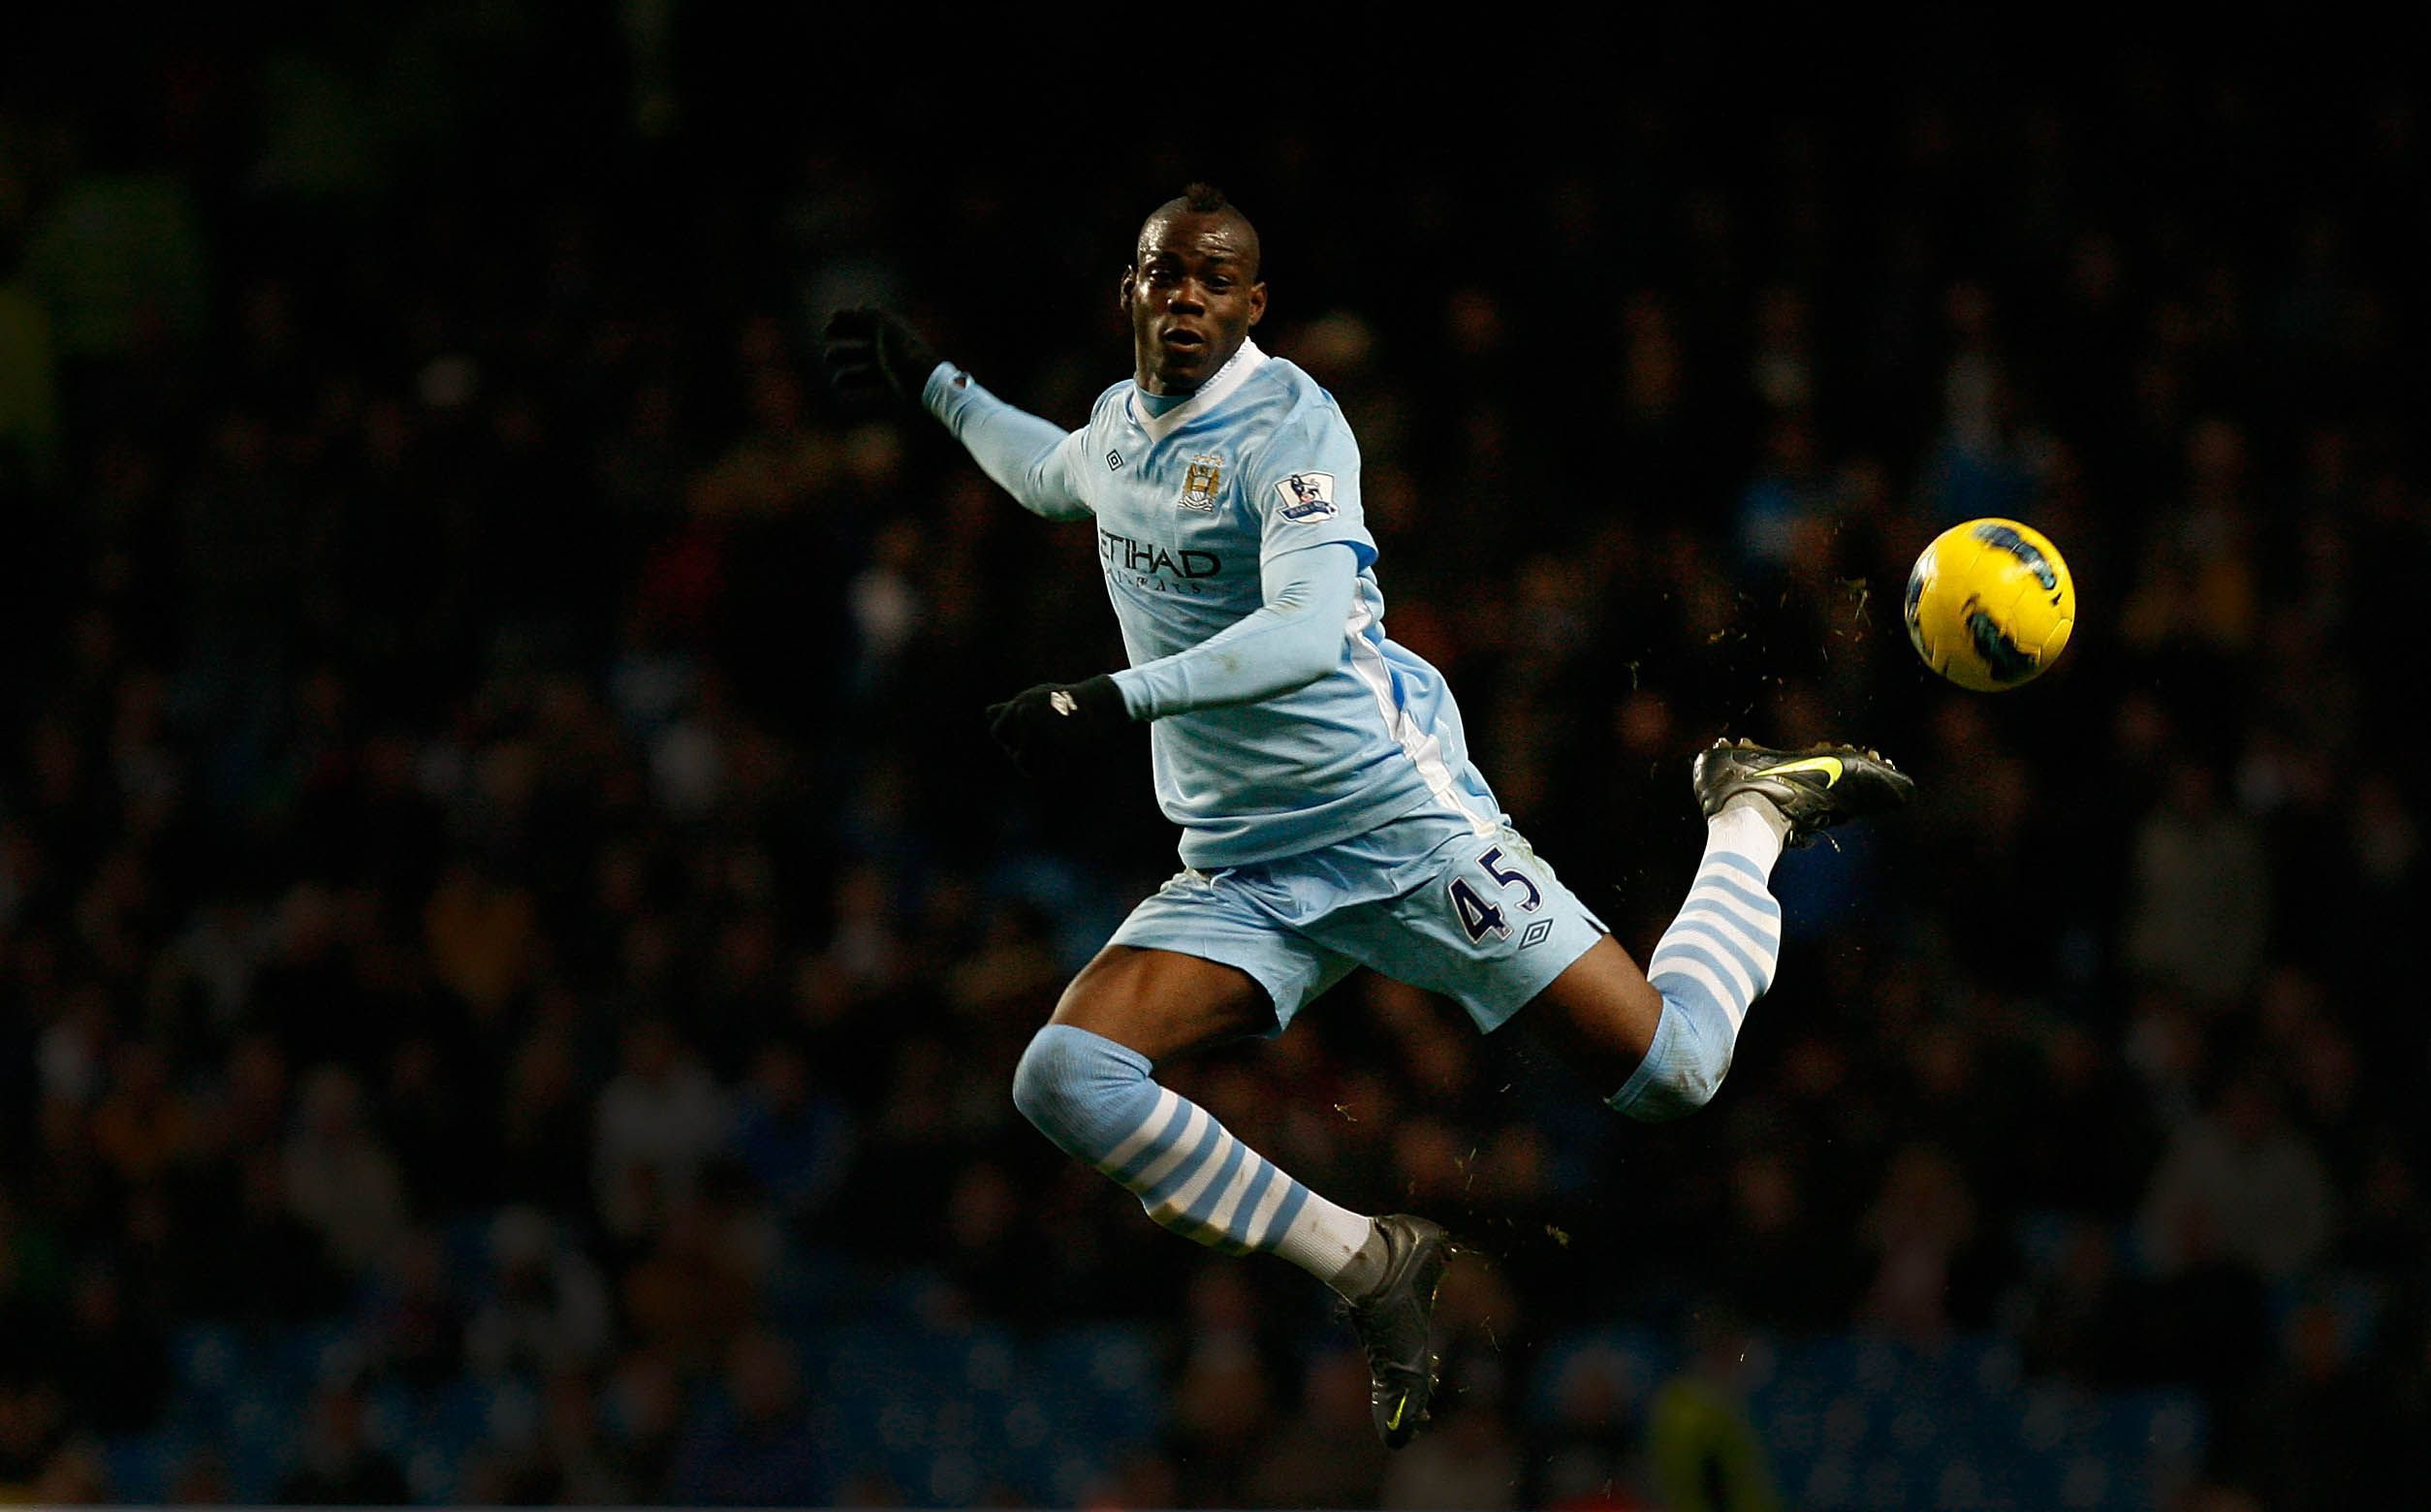 Mario Balotelli In Action For Manchester City Football: Premier